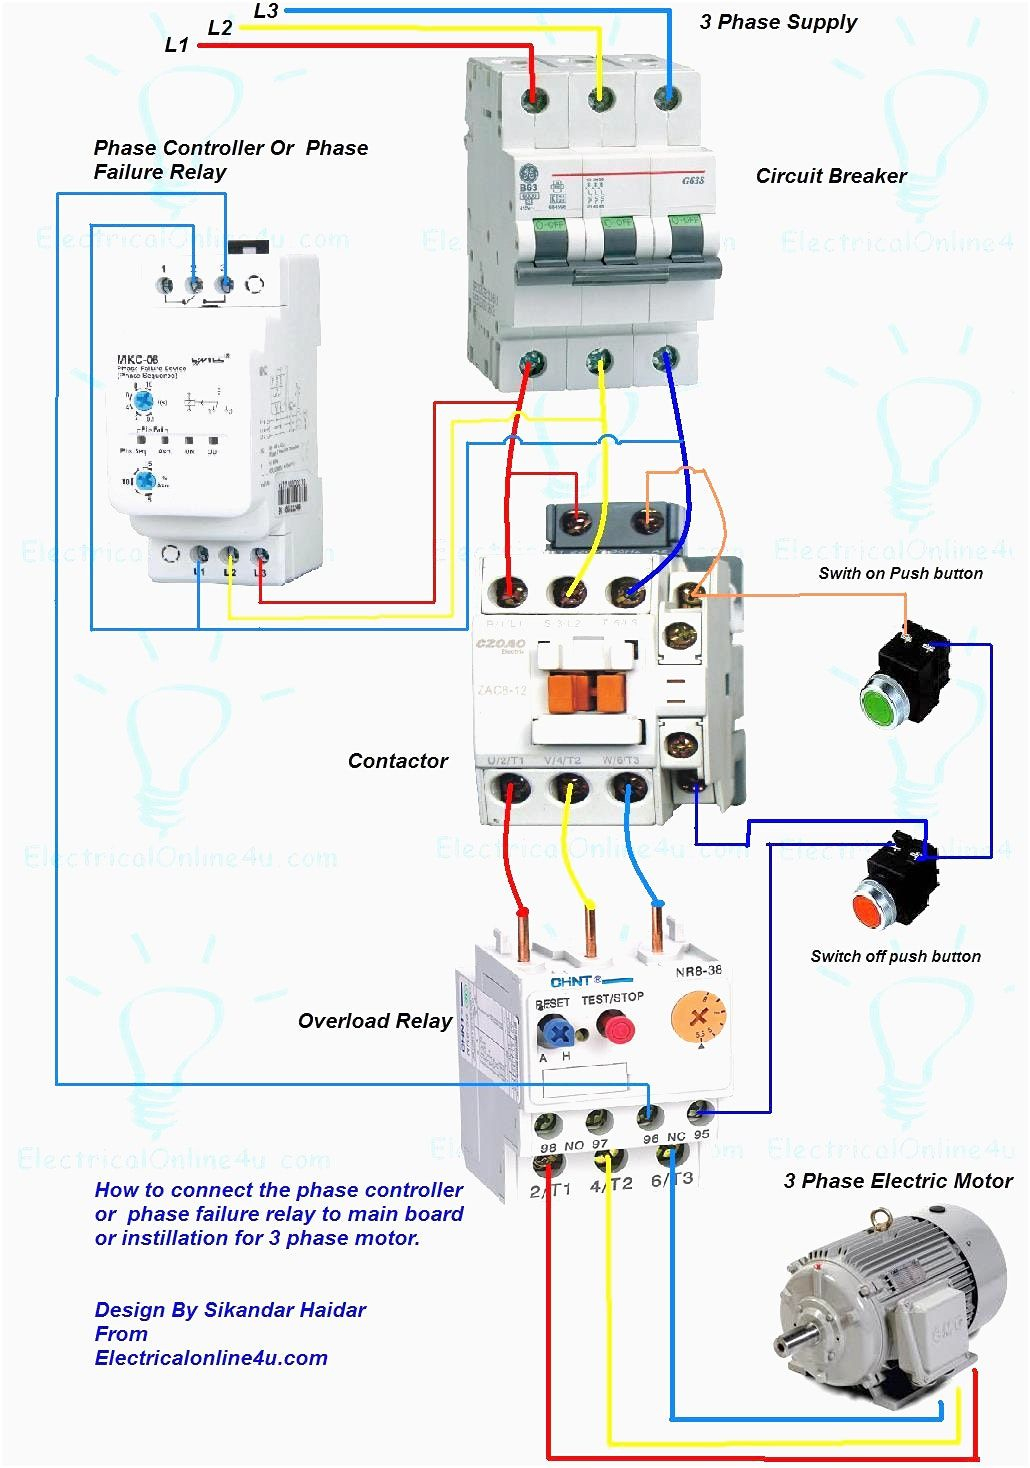 Wiring Diagram For Motor Starter 3 Phase Controller Failure Relay - 3 Phase Motors Wiring Diagram